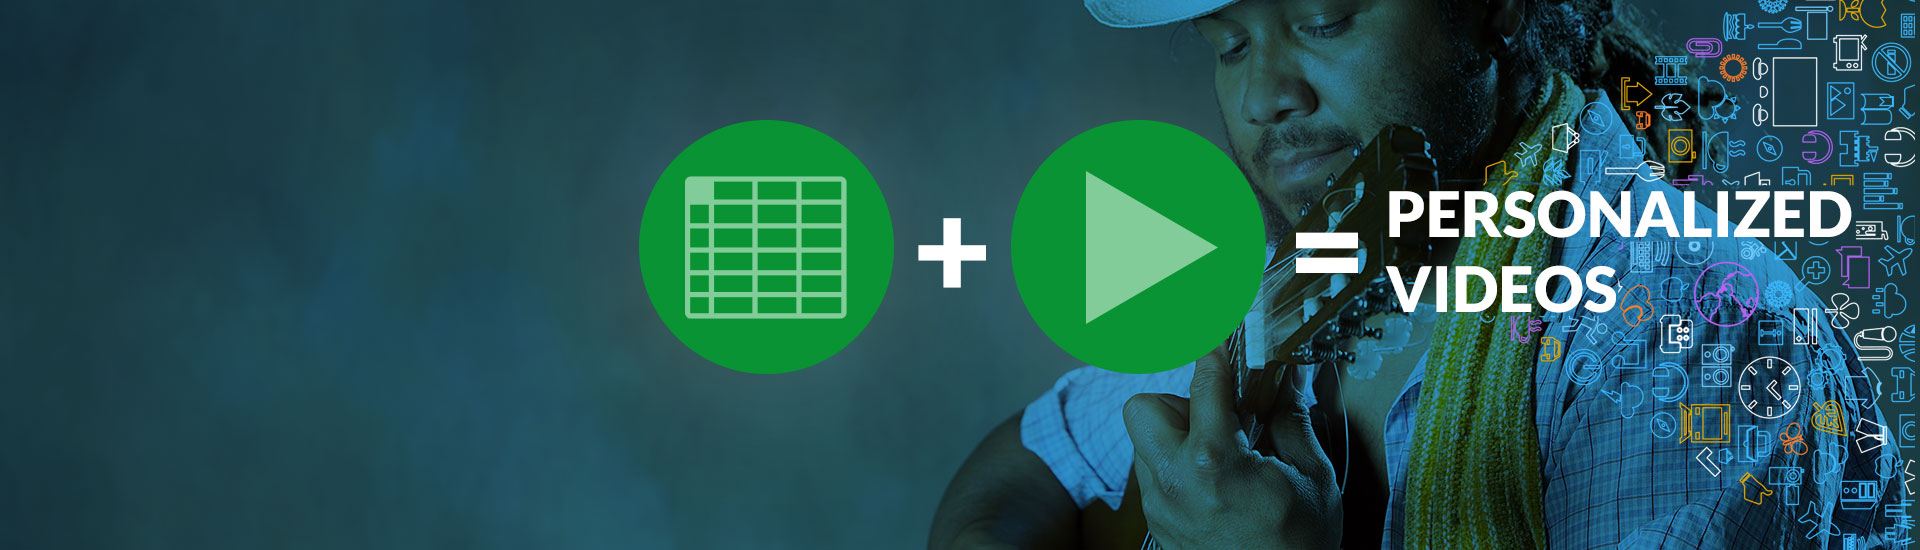 Make personalized videos from a spreadsheet with Zapier + Sezion